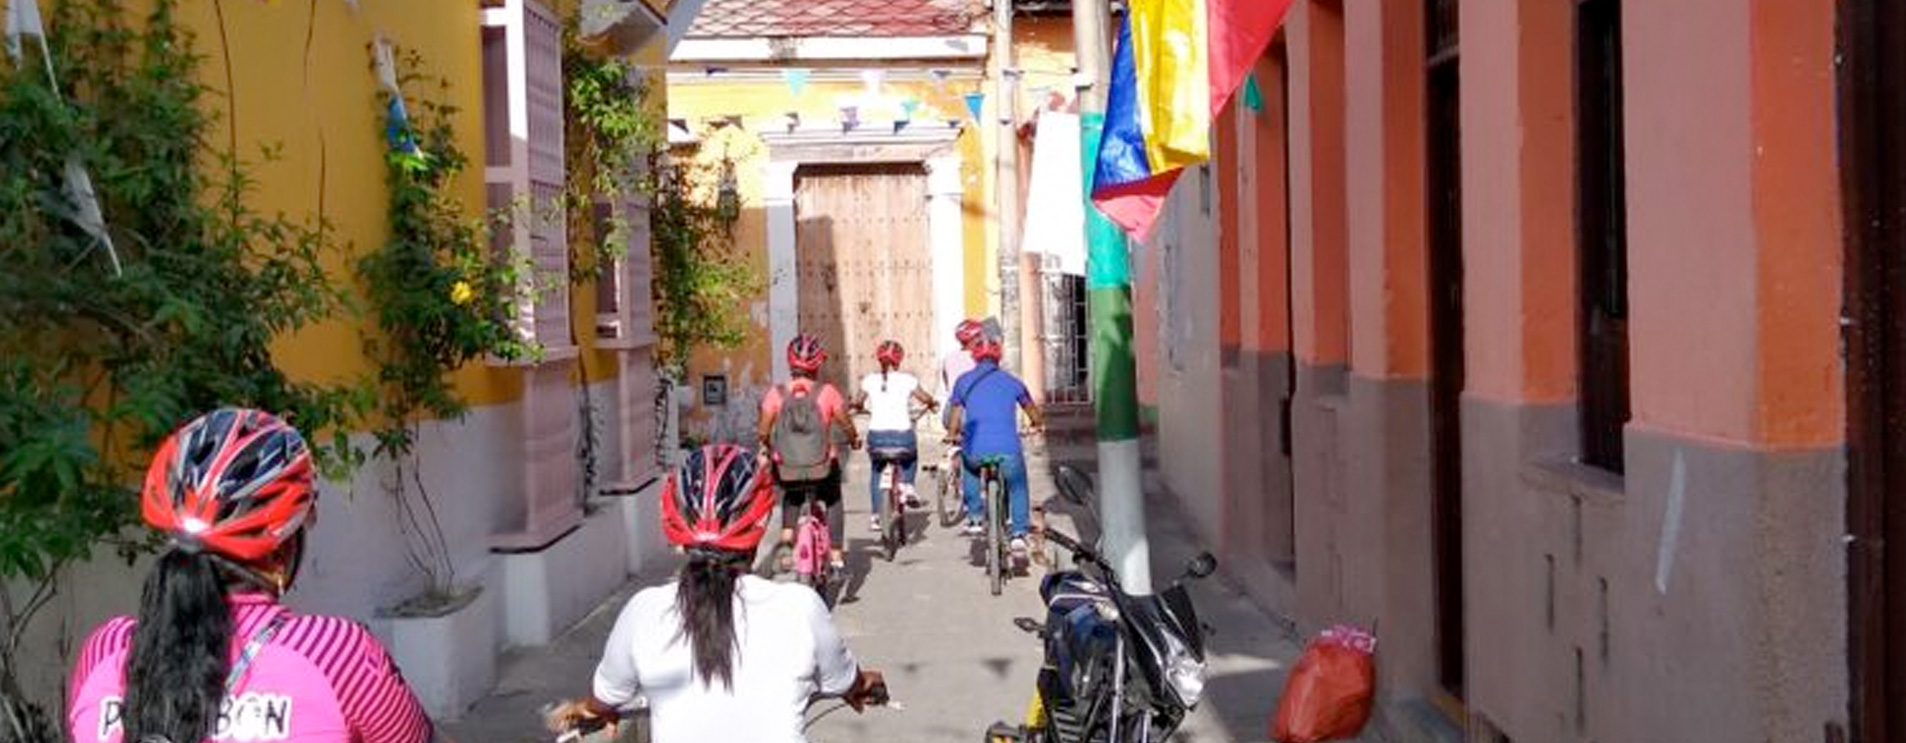 CARTAGENA-CITY_TOUR_BY_BICYCLE